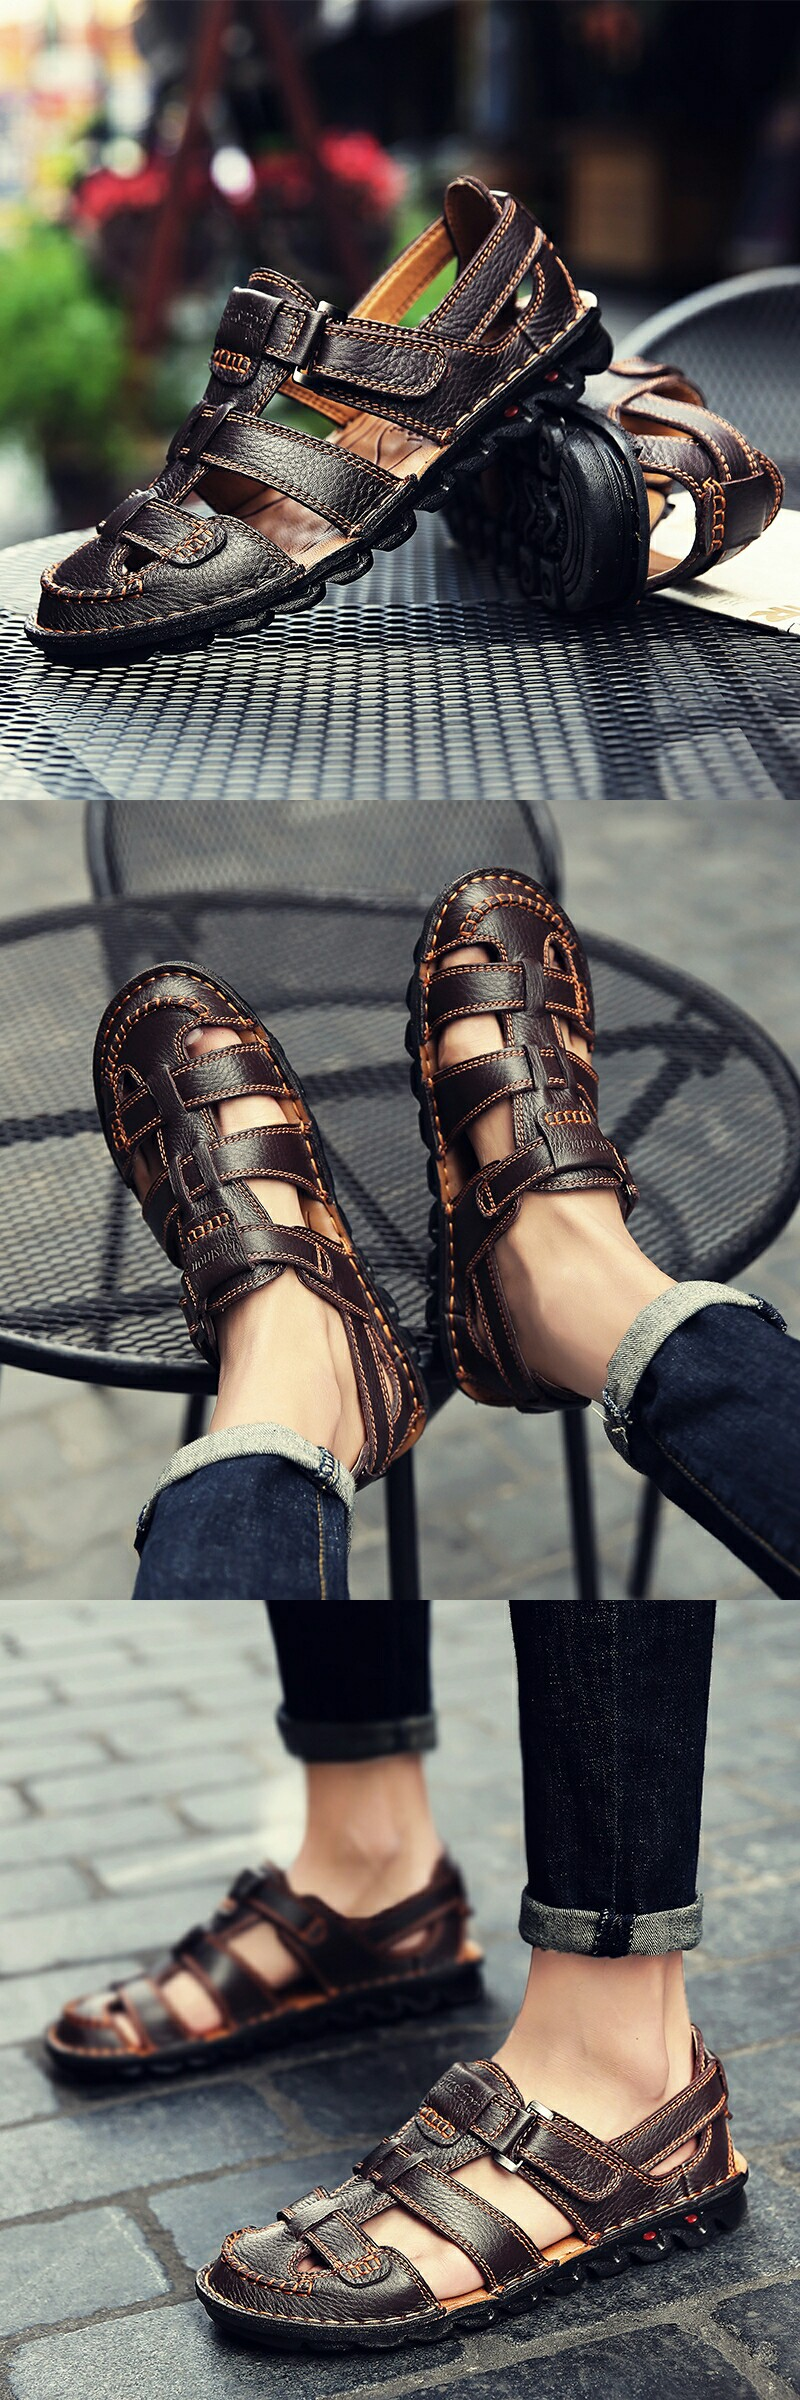 2e02f6cbccaf3 Amazon Men's Casual Outdoor Strap Summer Fisherman Leather Sandals ...